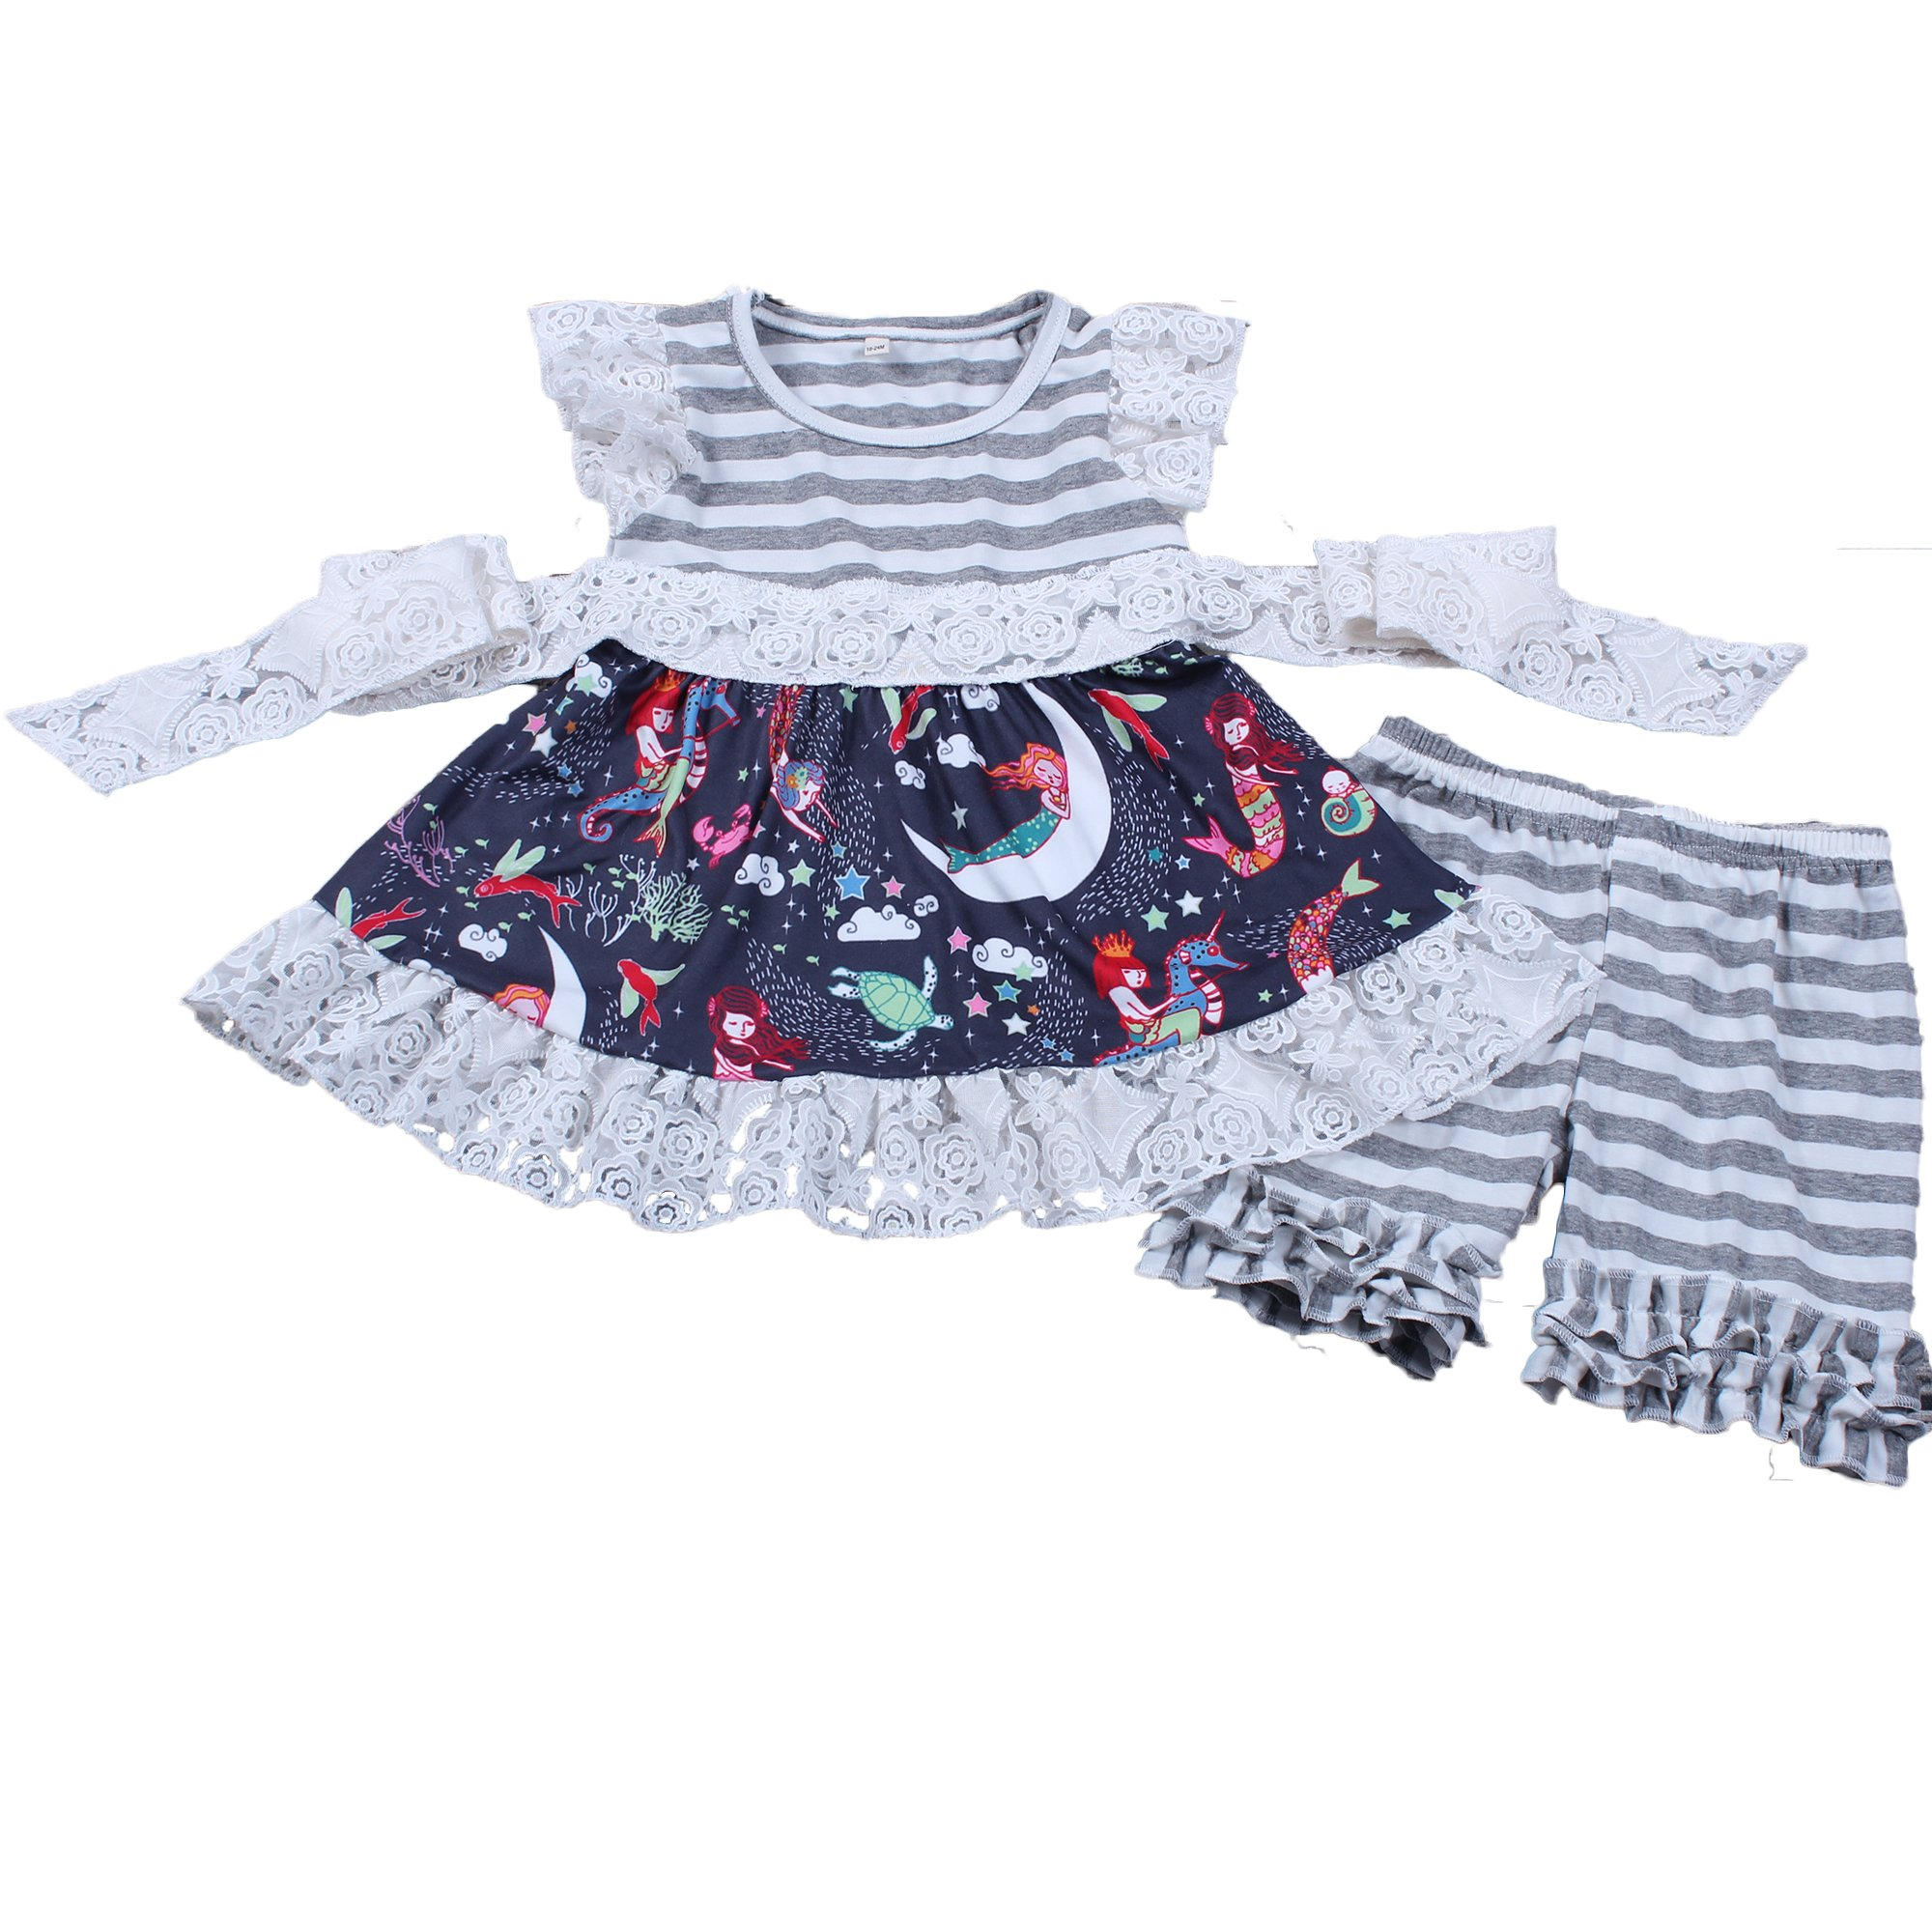 Yawoo Haan Girls Summer Top Dress Icing Shorts Set Baby Mermaid Clothes 6-7T